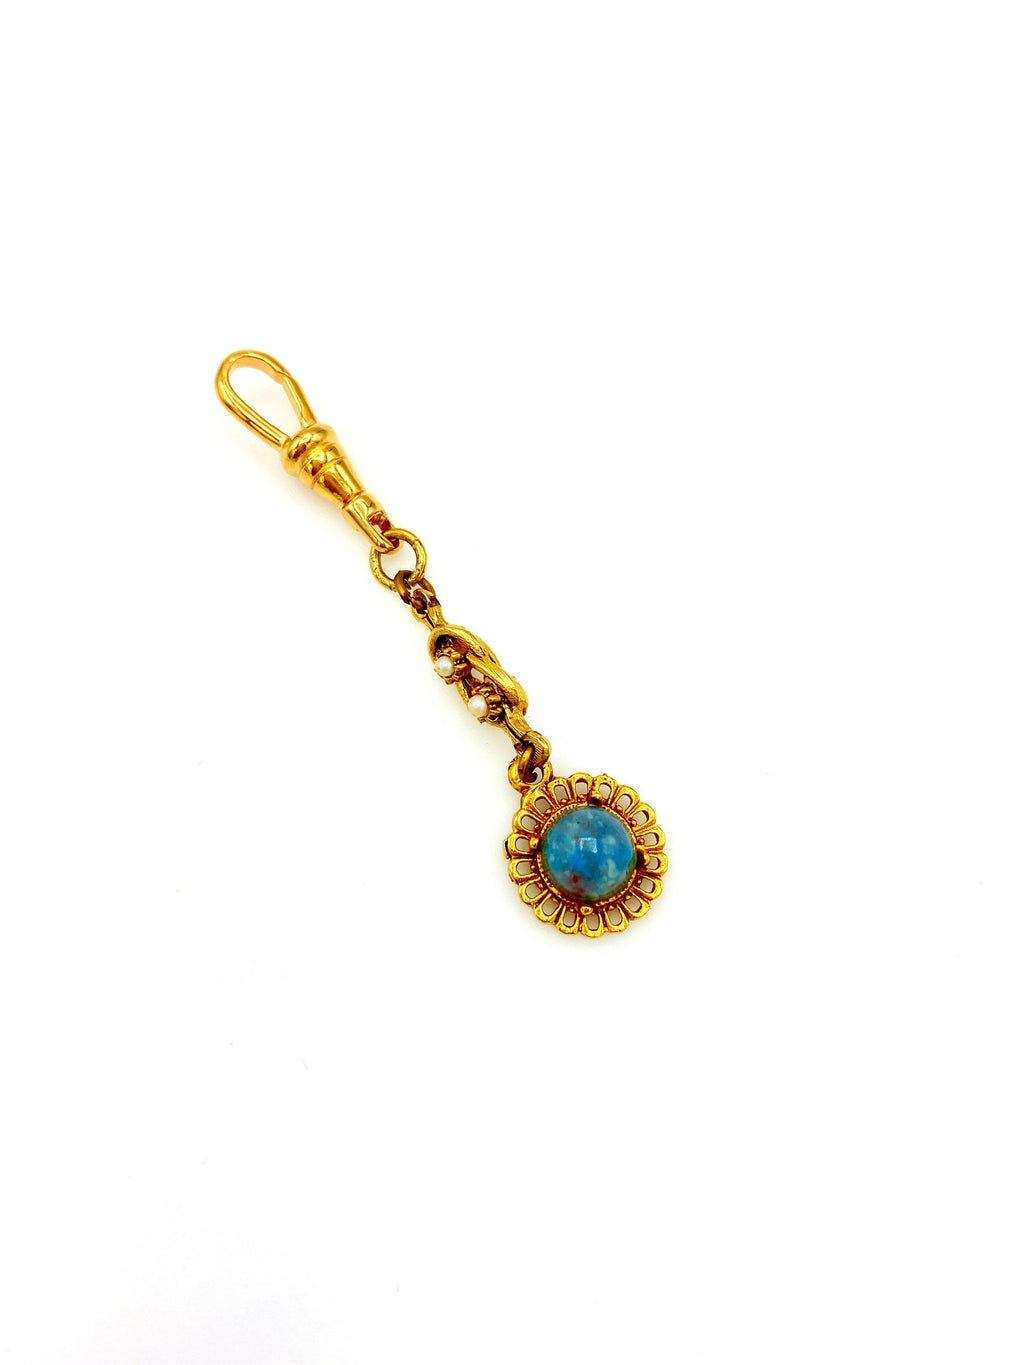 Gold Daisy Victorian Revival Charm Swivel Fob Jewelry